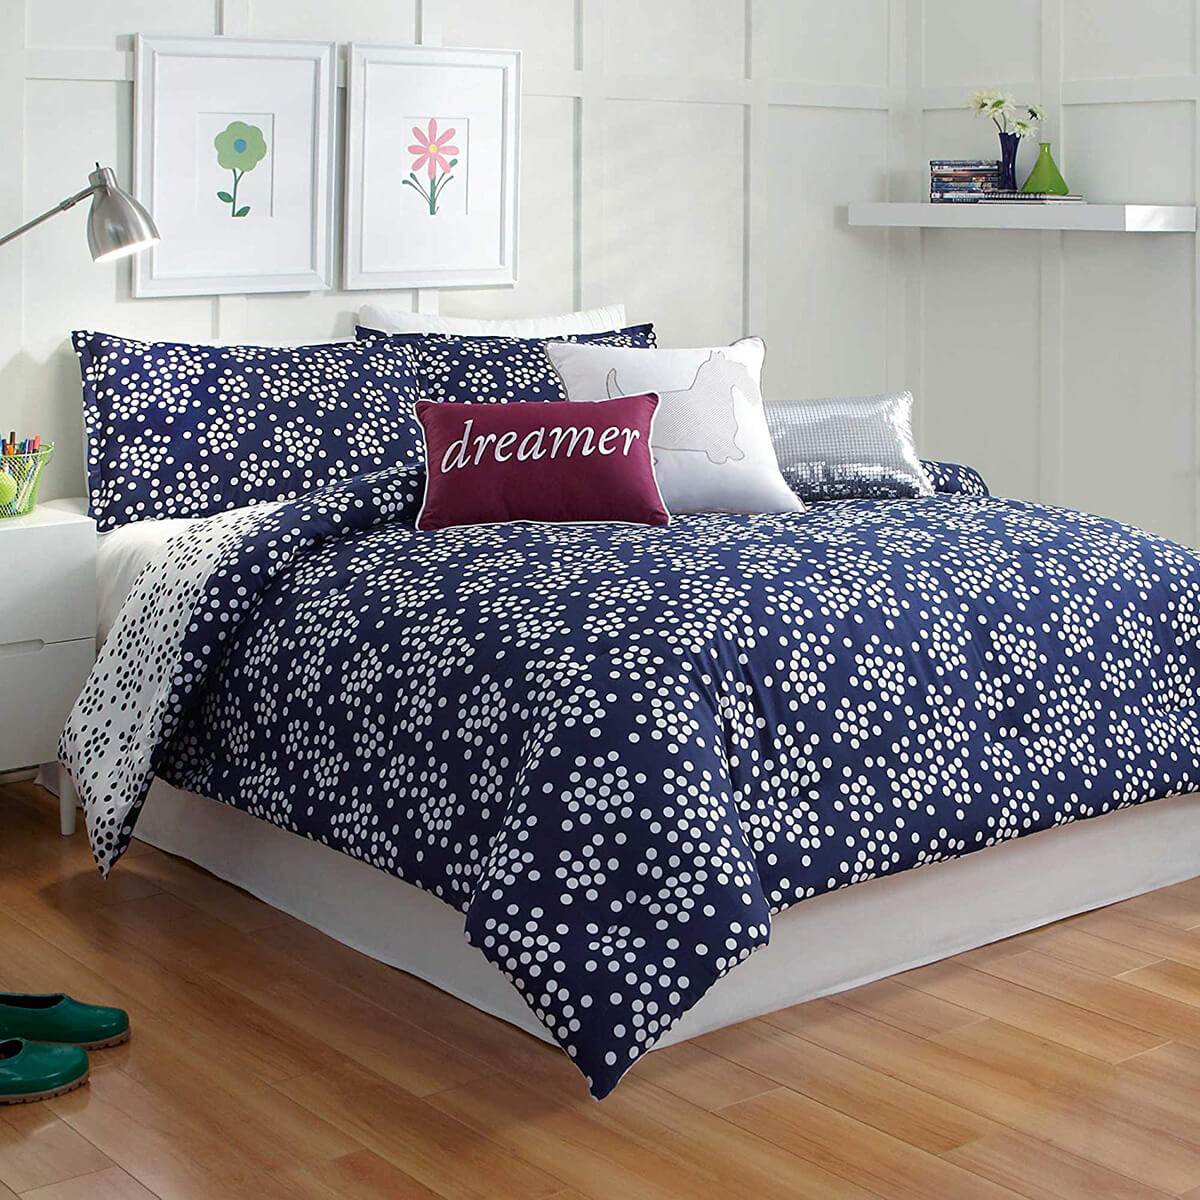 Preppy Navy Blue and White Reversible Bedding